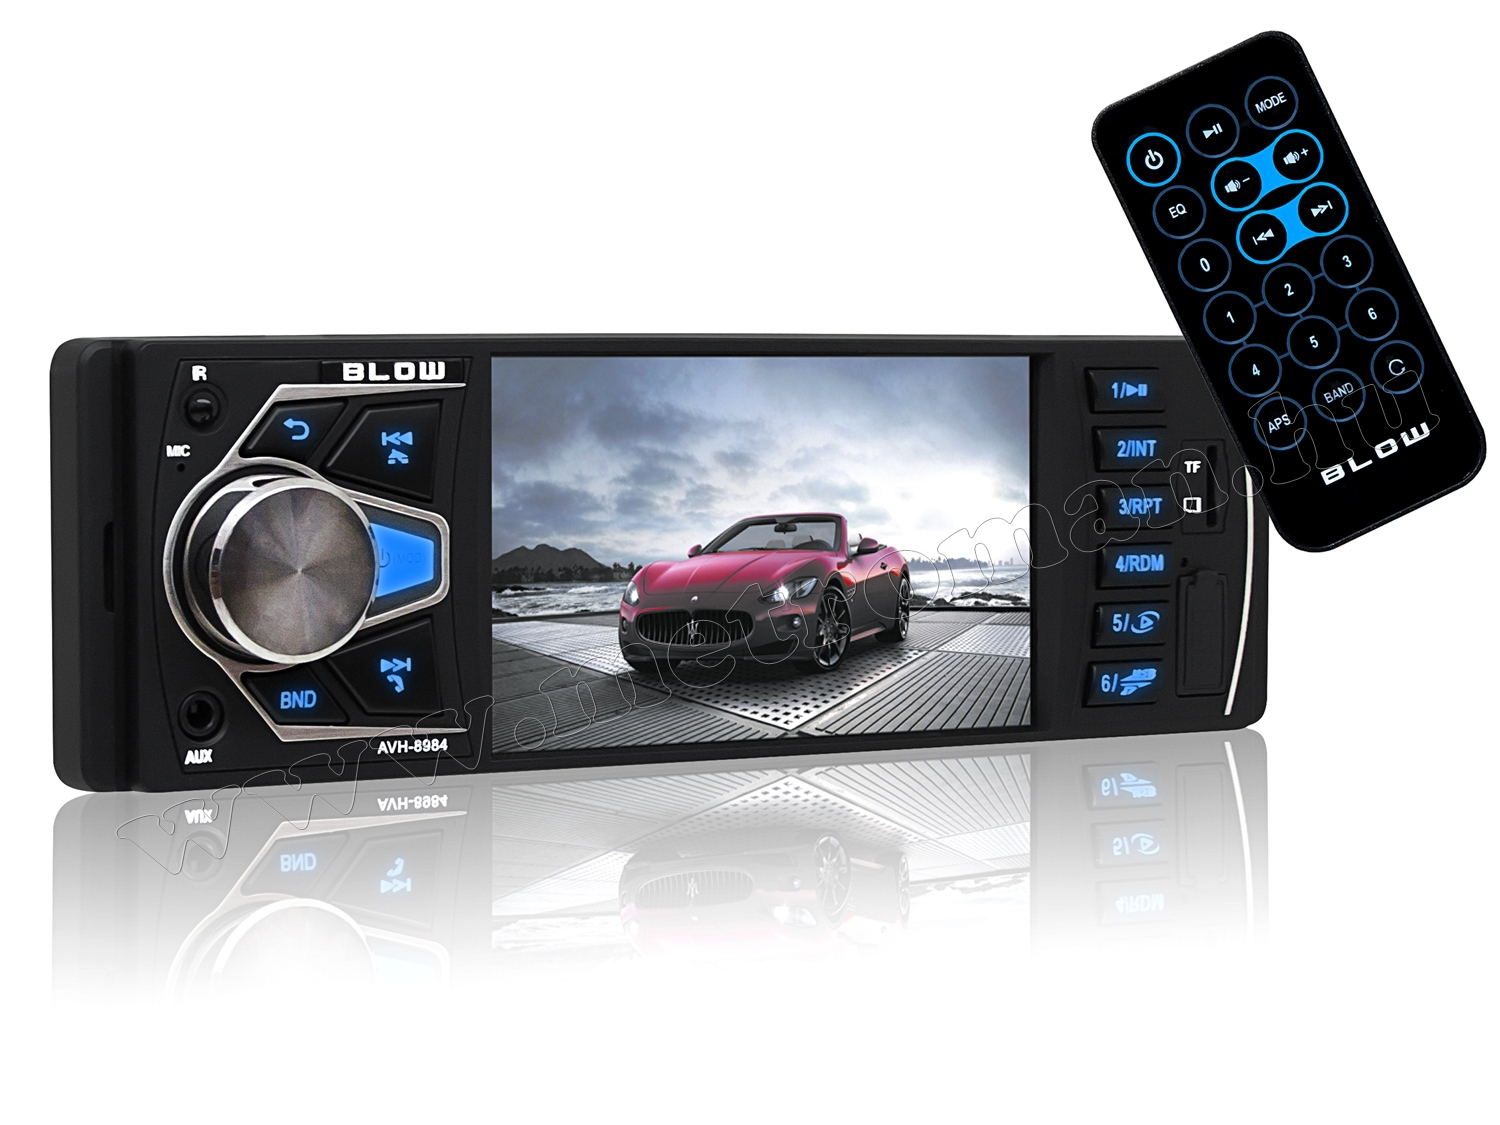 USB/SD MP3 MP4 MP5 Bluetooth Multimédiás autórádió LCD monitorral AVH-8984